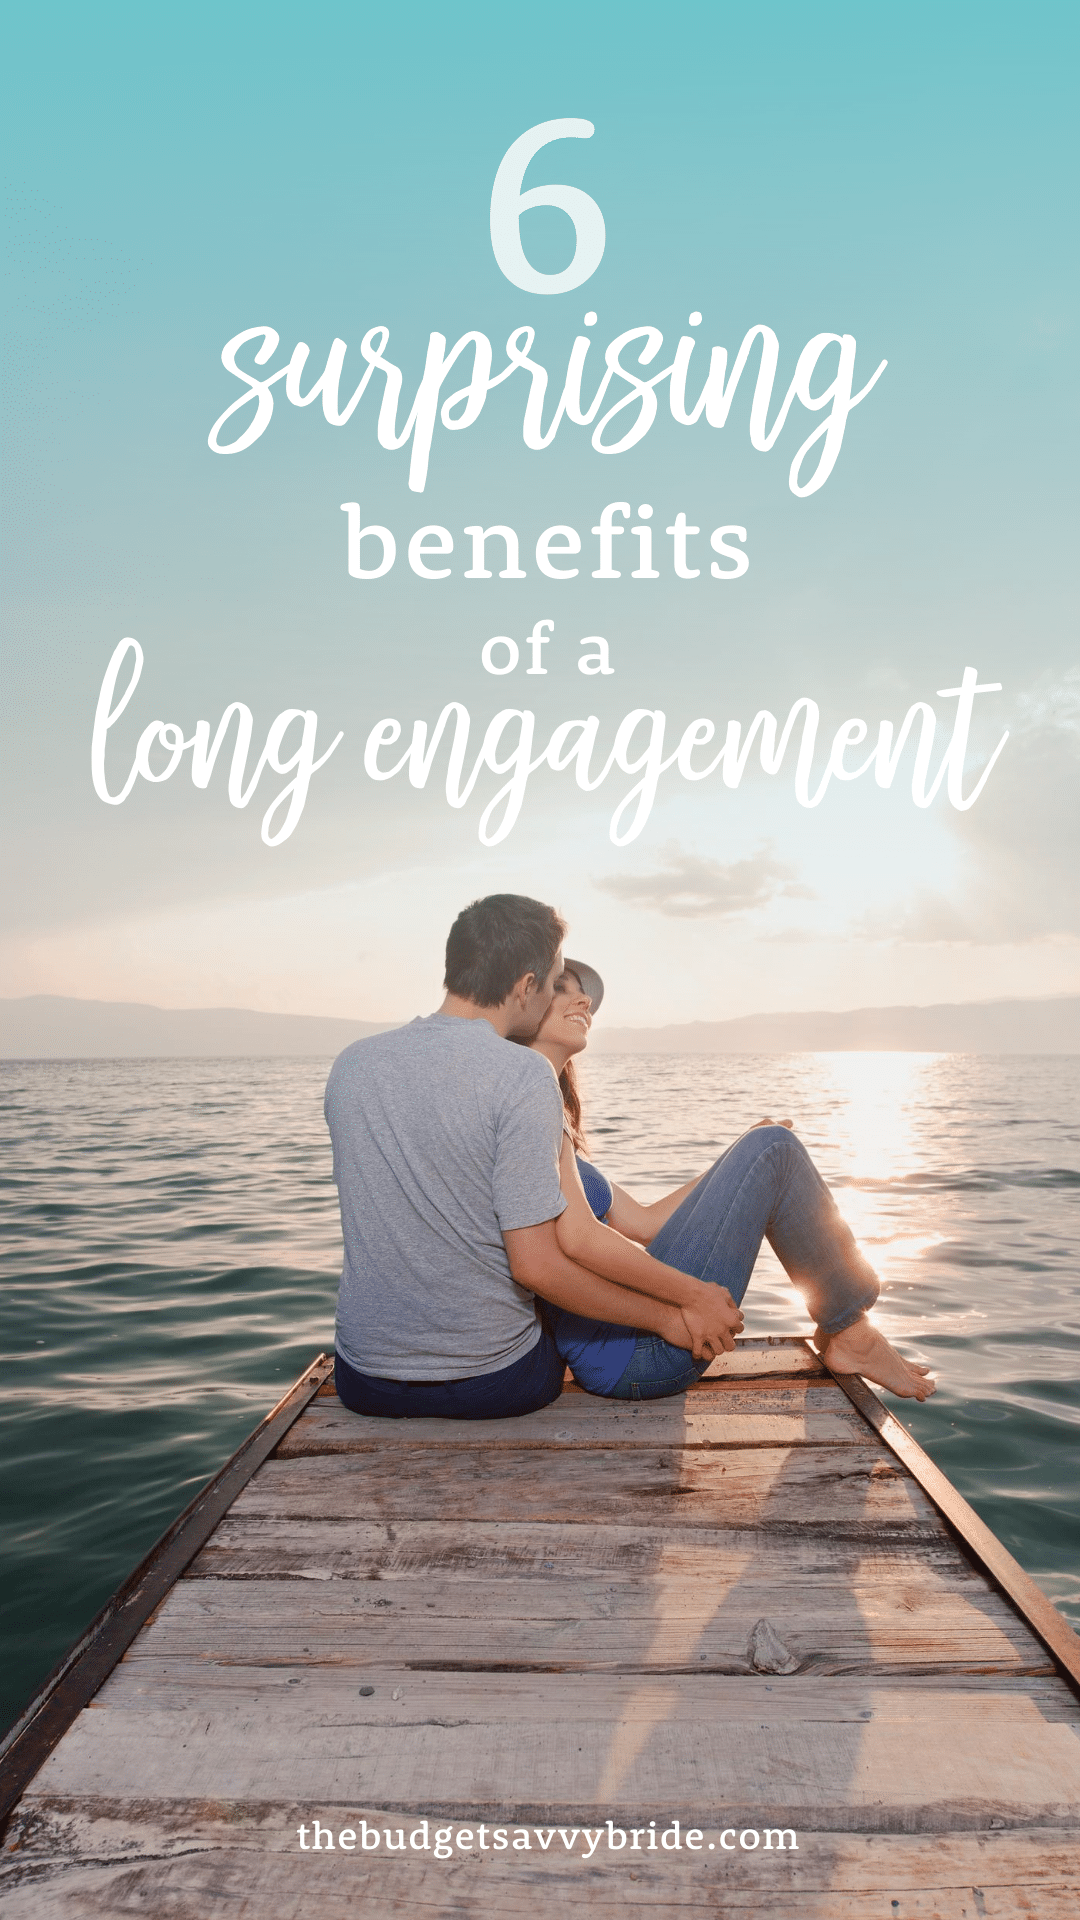 6 surprising benefits of a long engagement